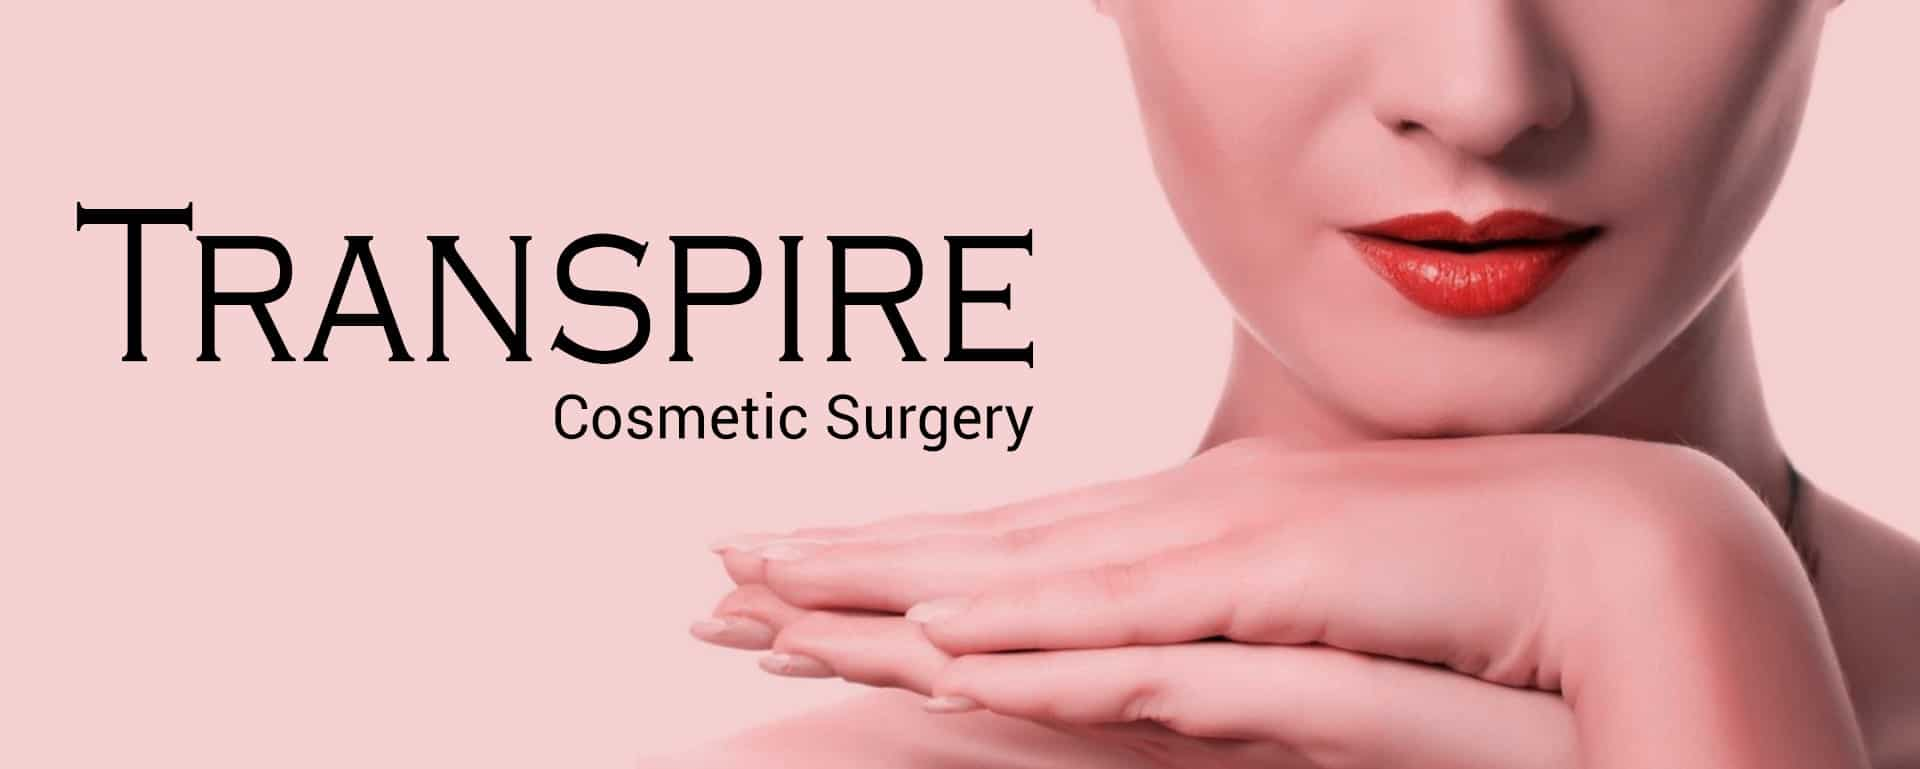 transpire cosmetic surgery how to finance treatment